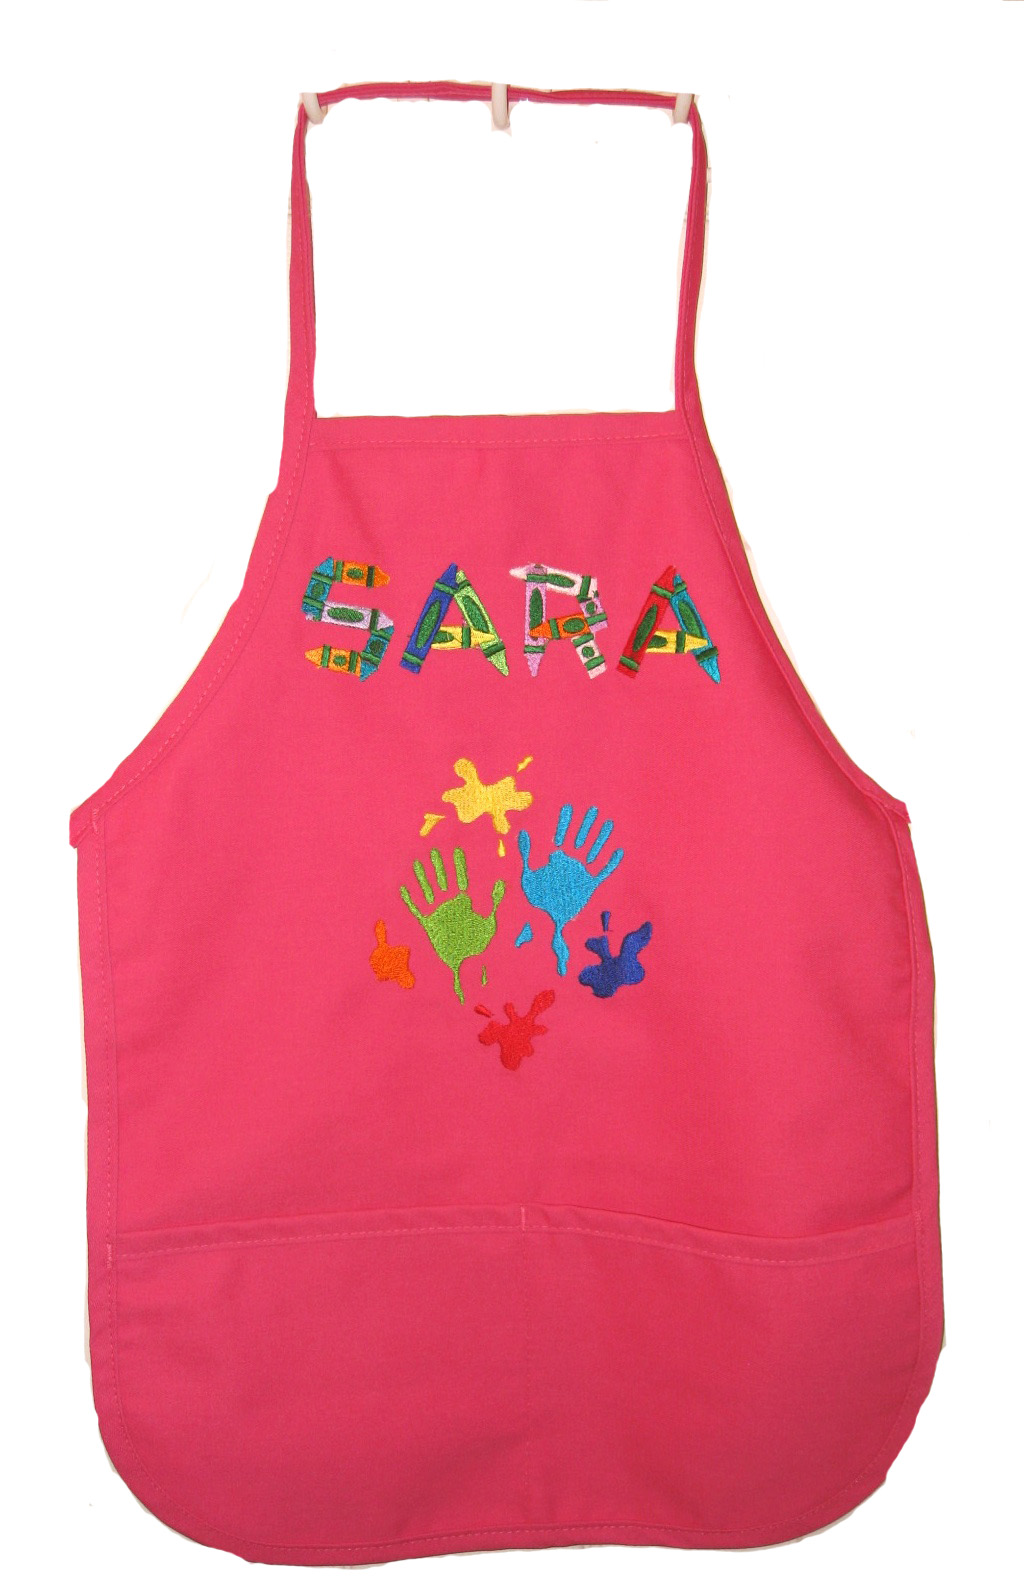 Best Seller Monogrammed Child Apron with Pockets, More Colors, Add a Design